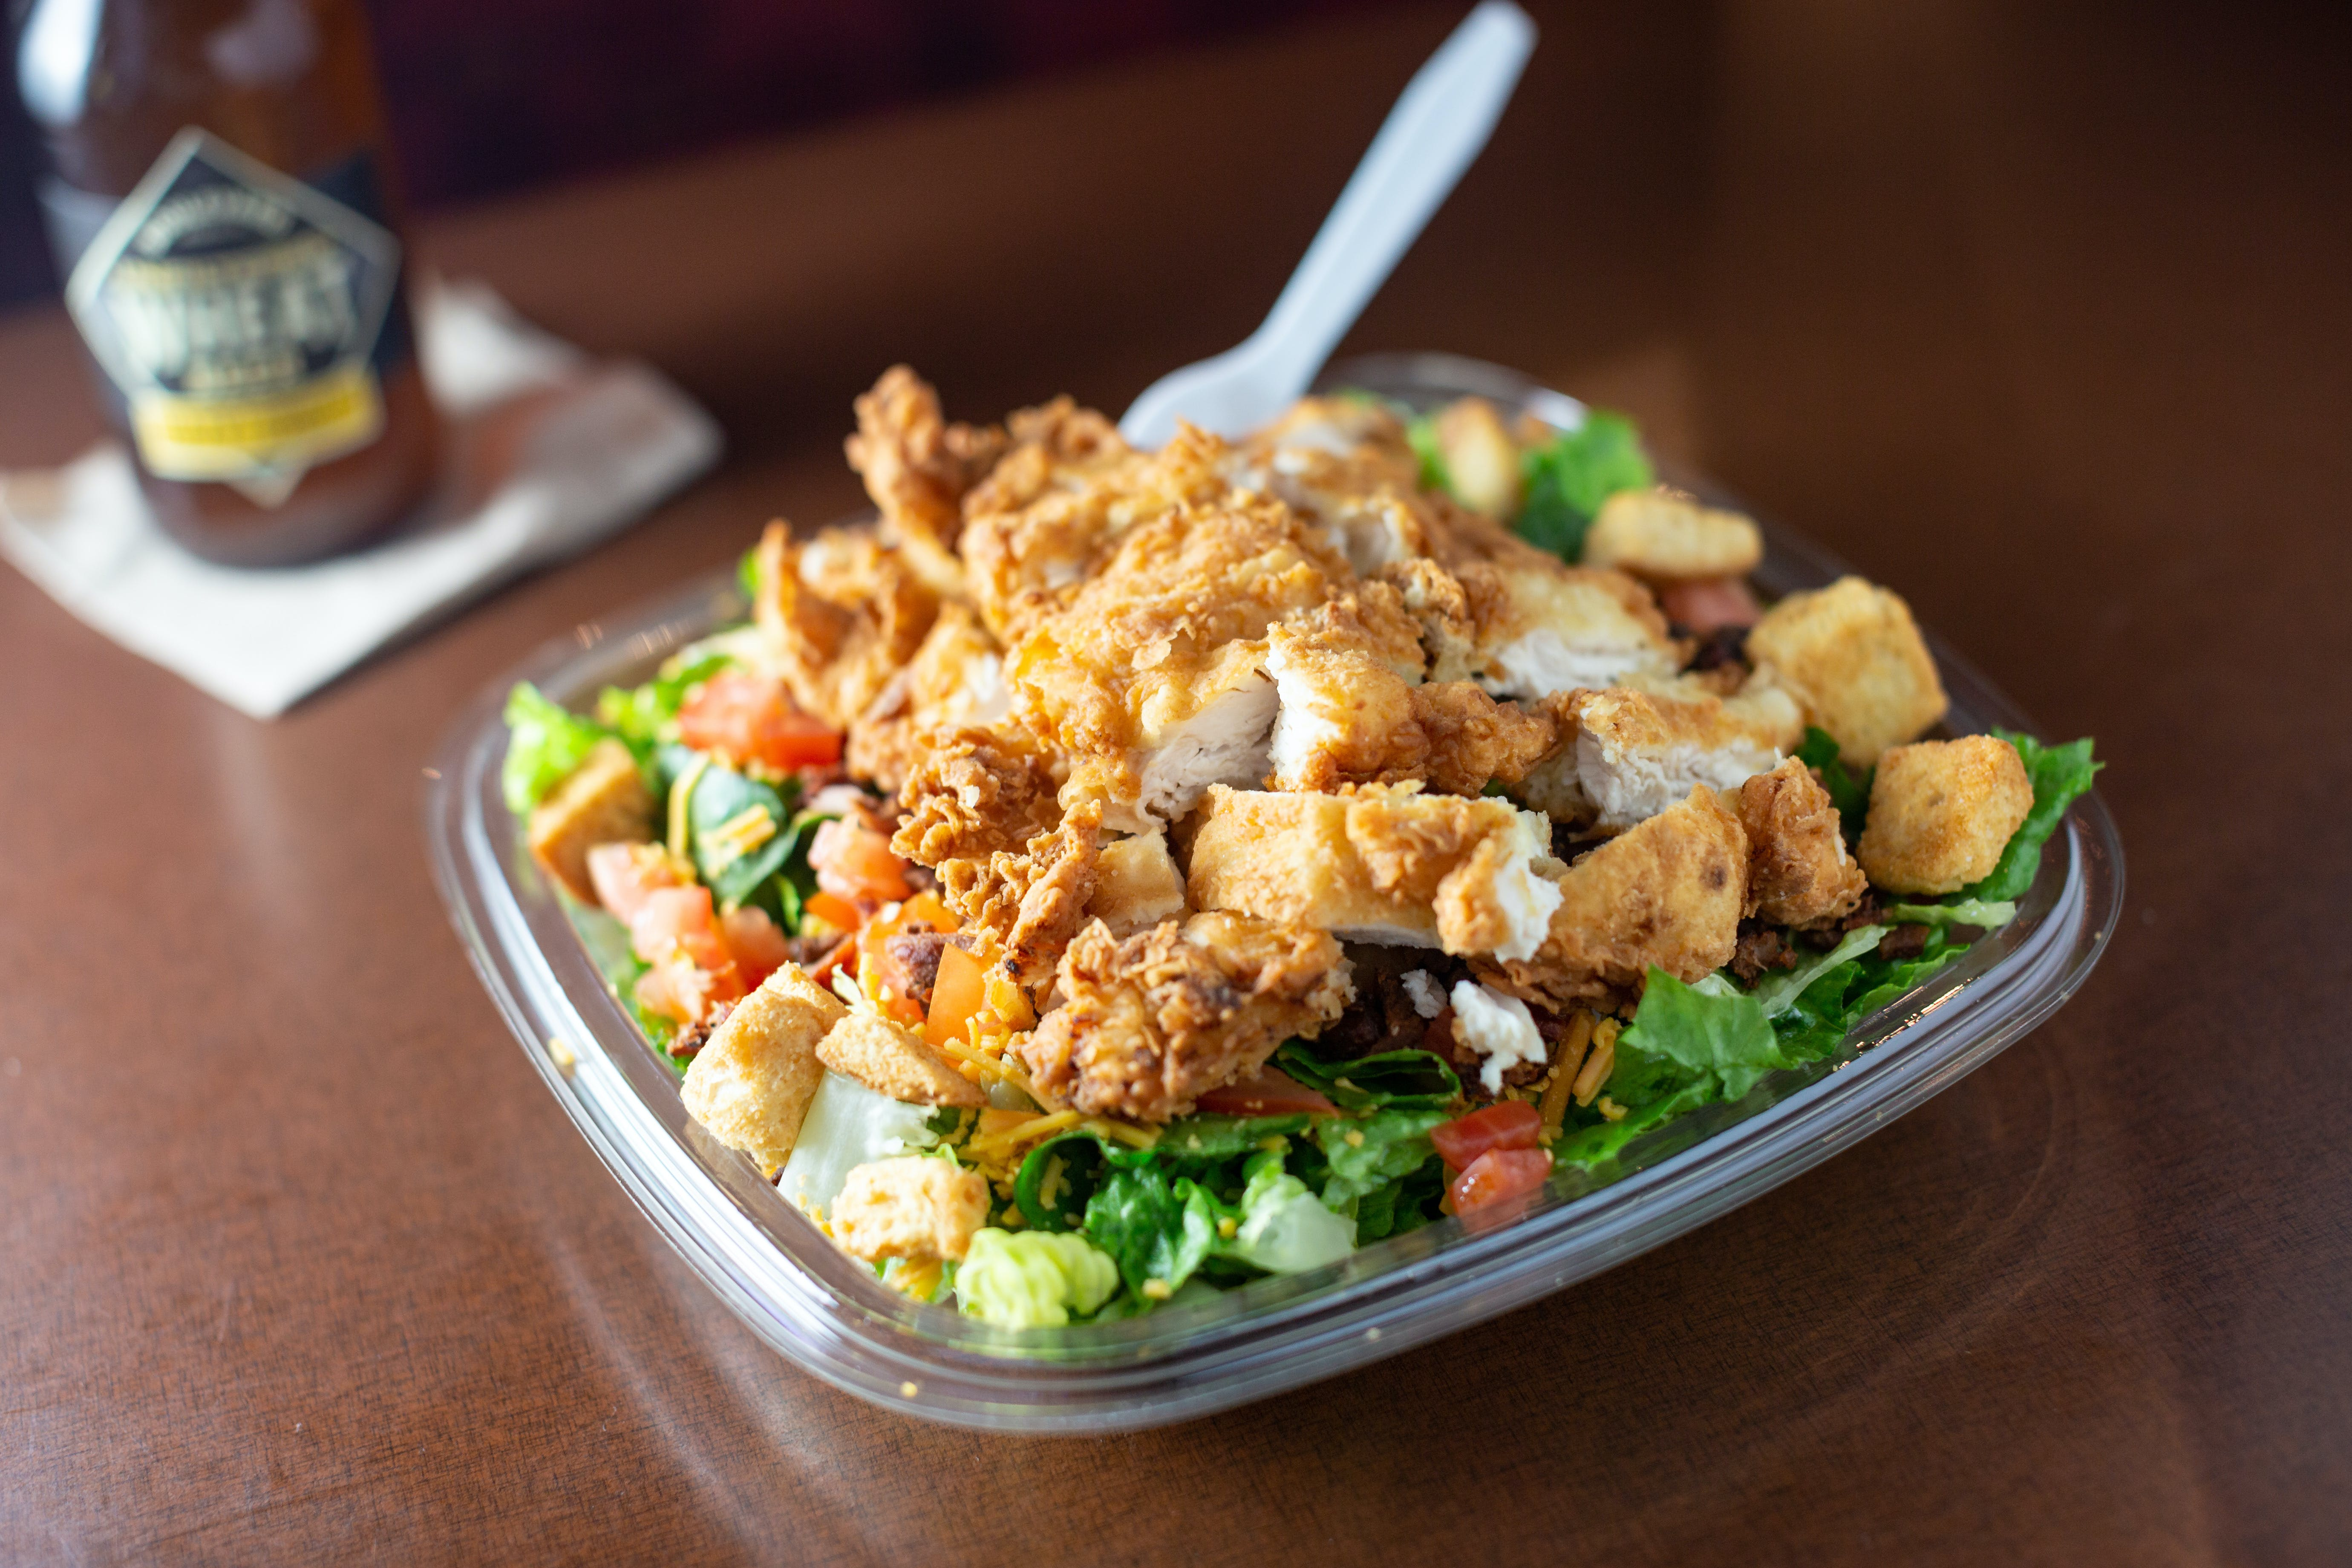 Crispy Chicken Salad from Burgers by Biggs in Lawrence, KS